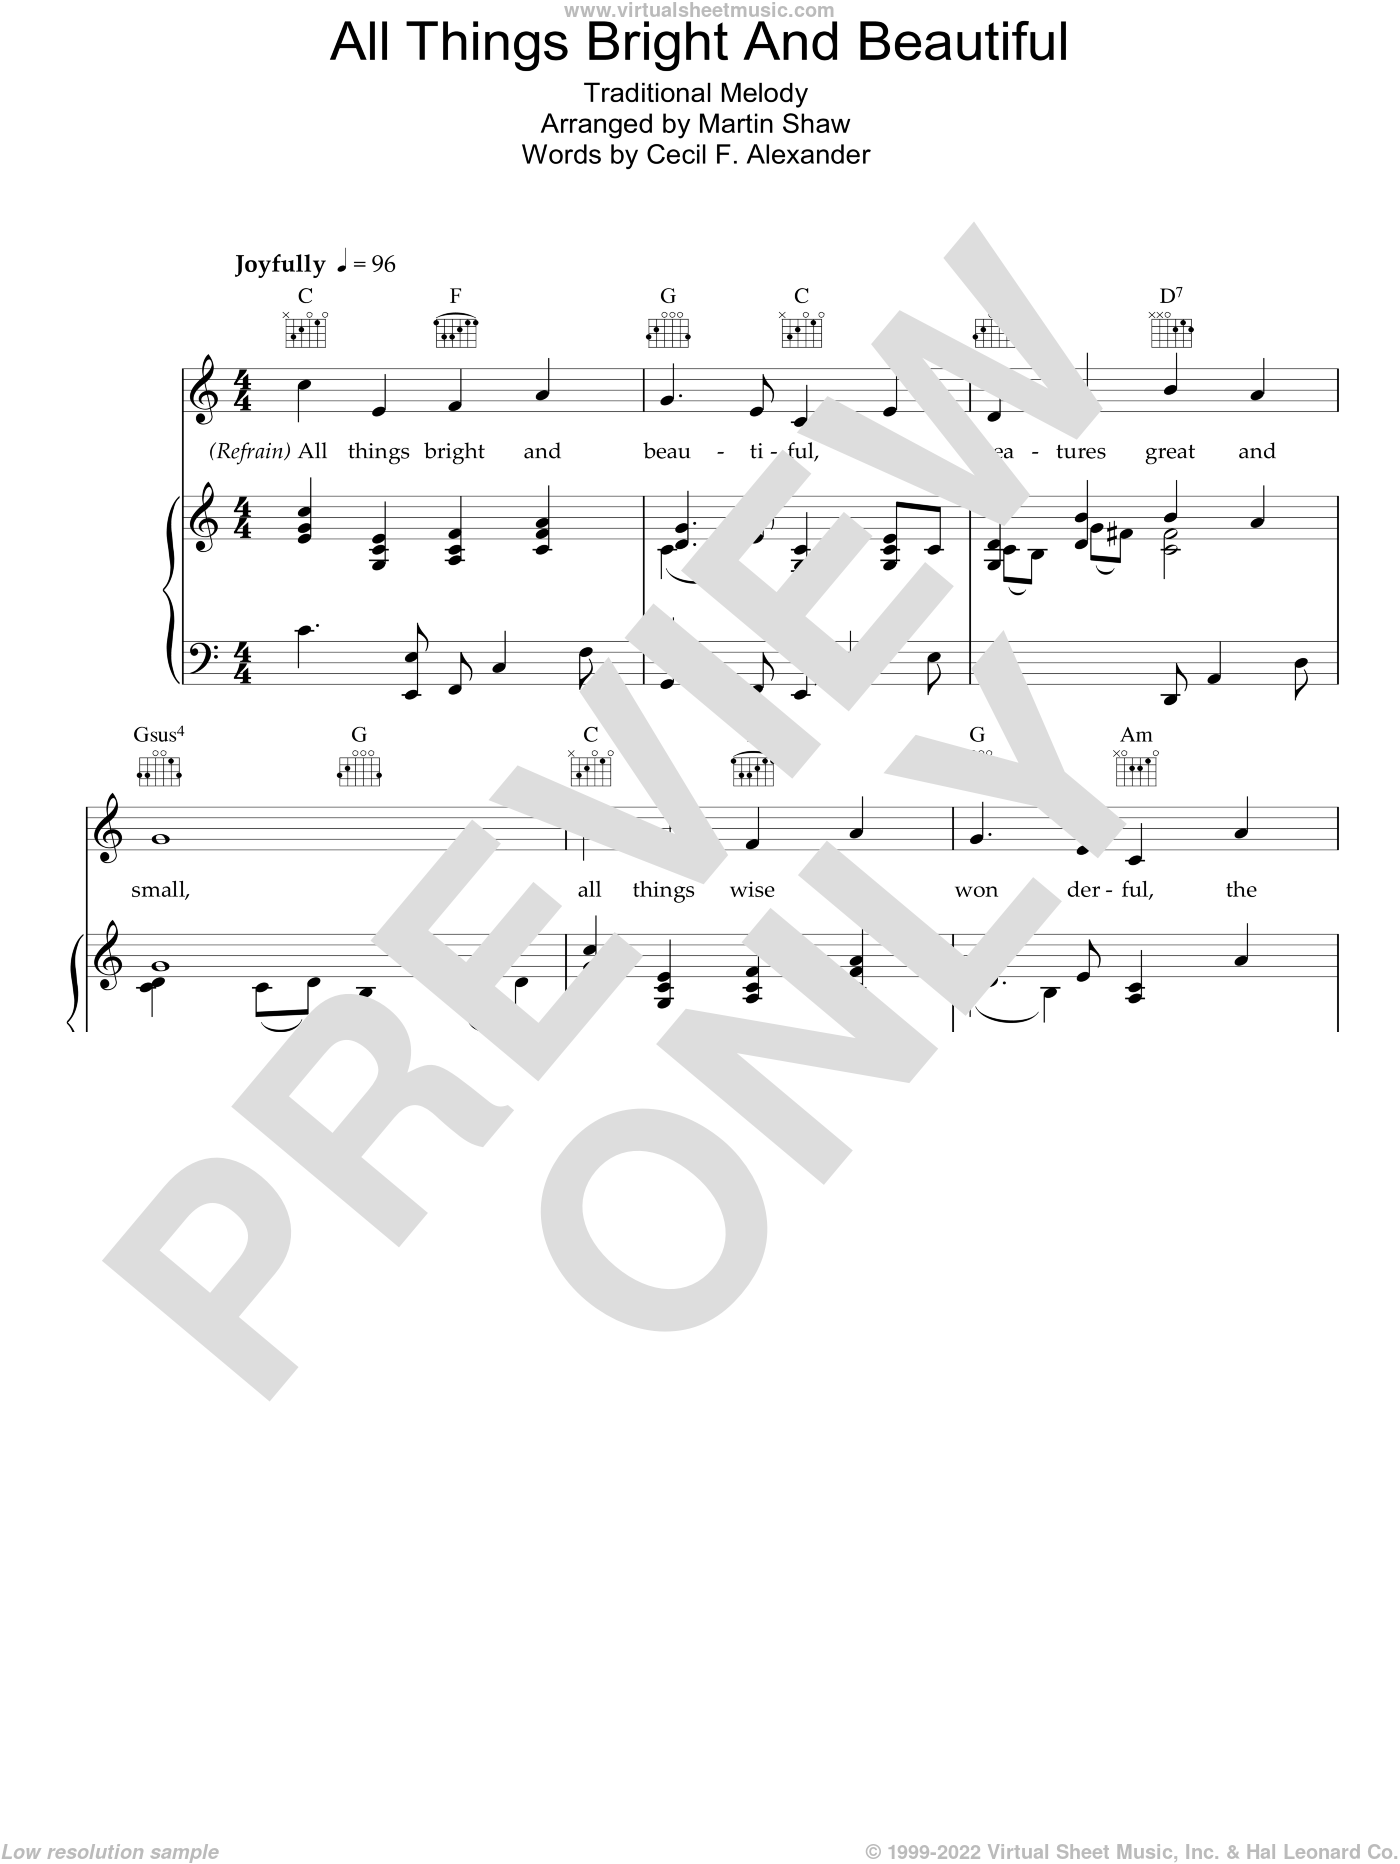 All Things Bright And Beautiful sheet music for voice, piano or guitar